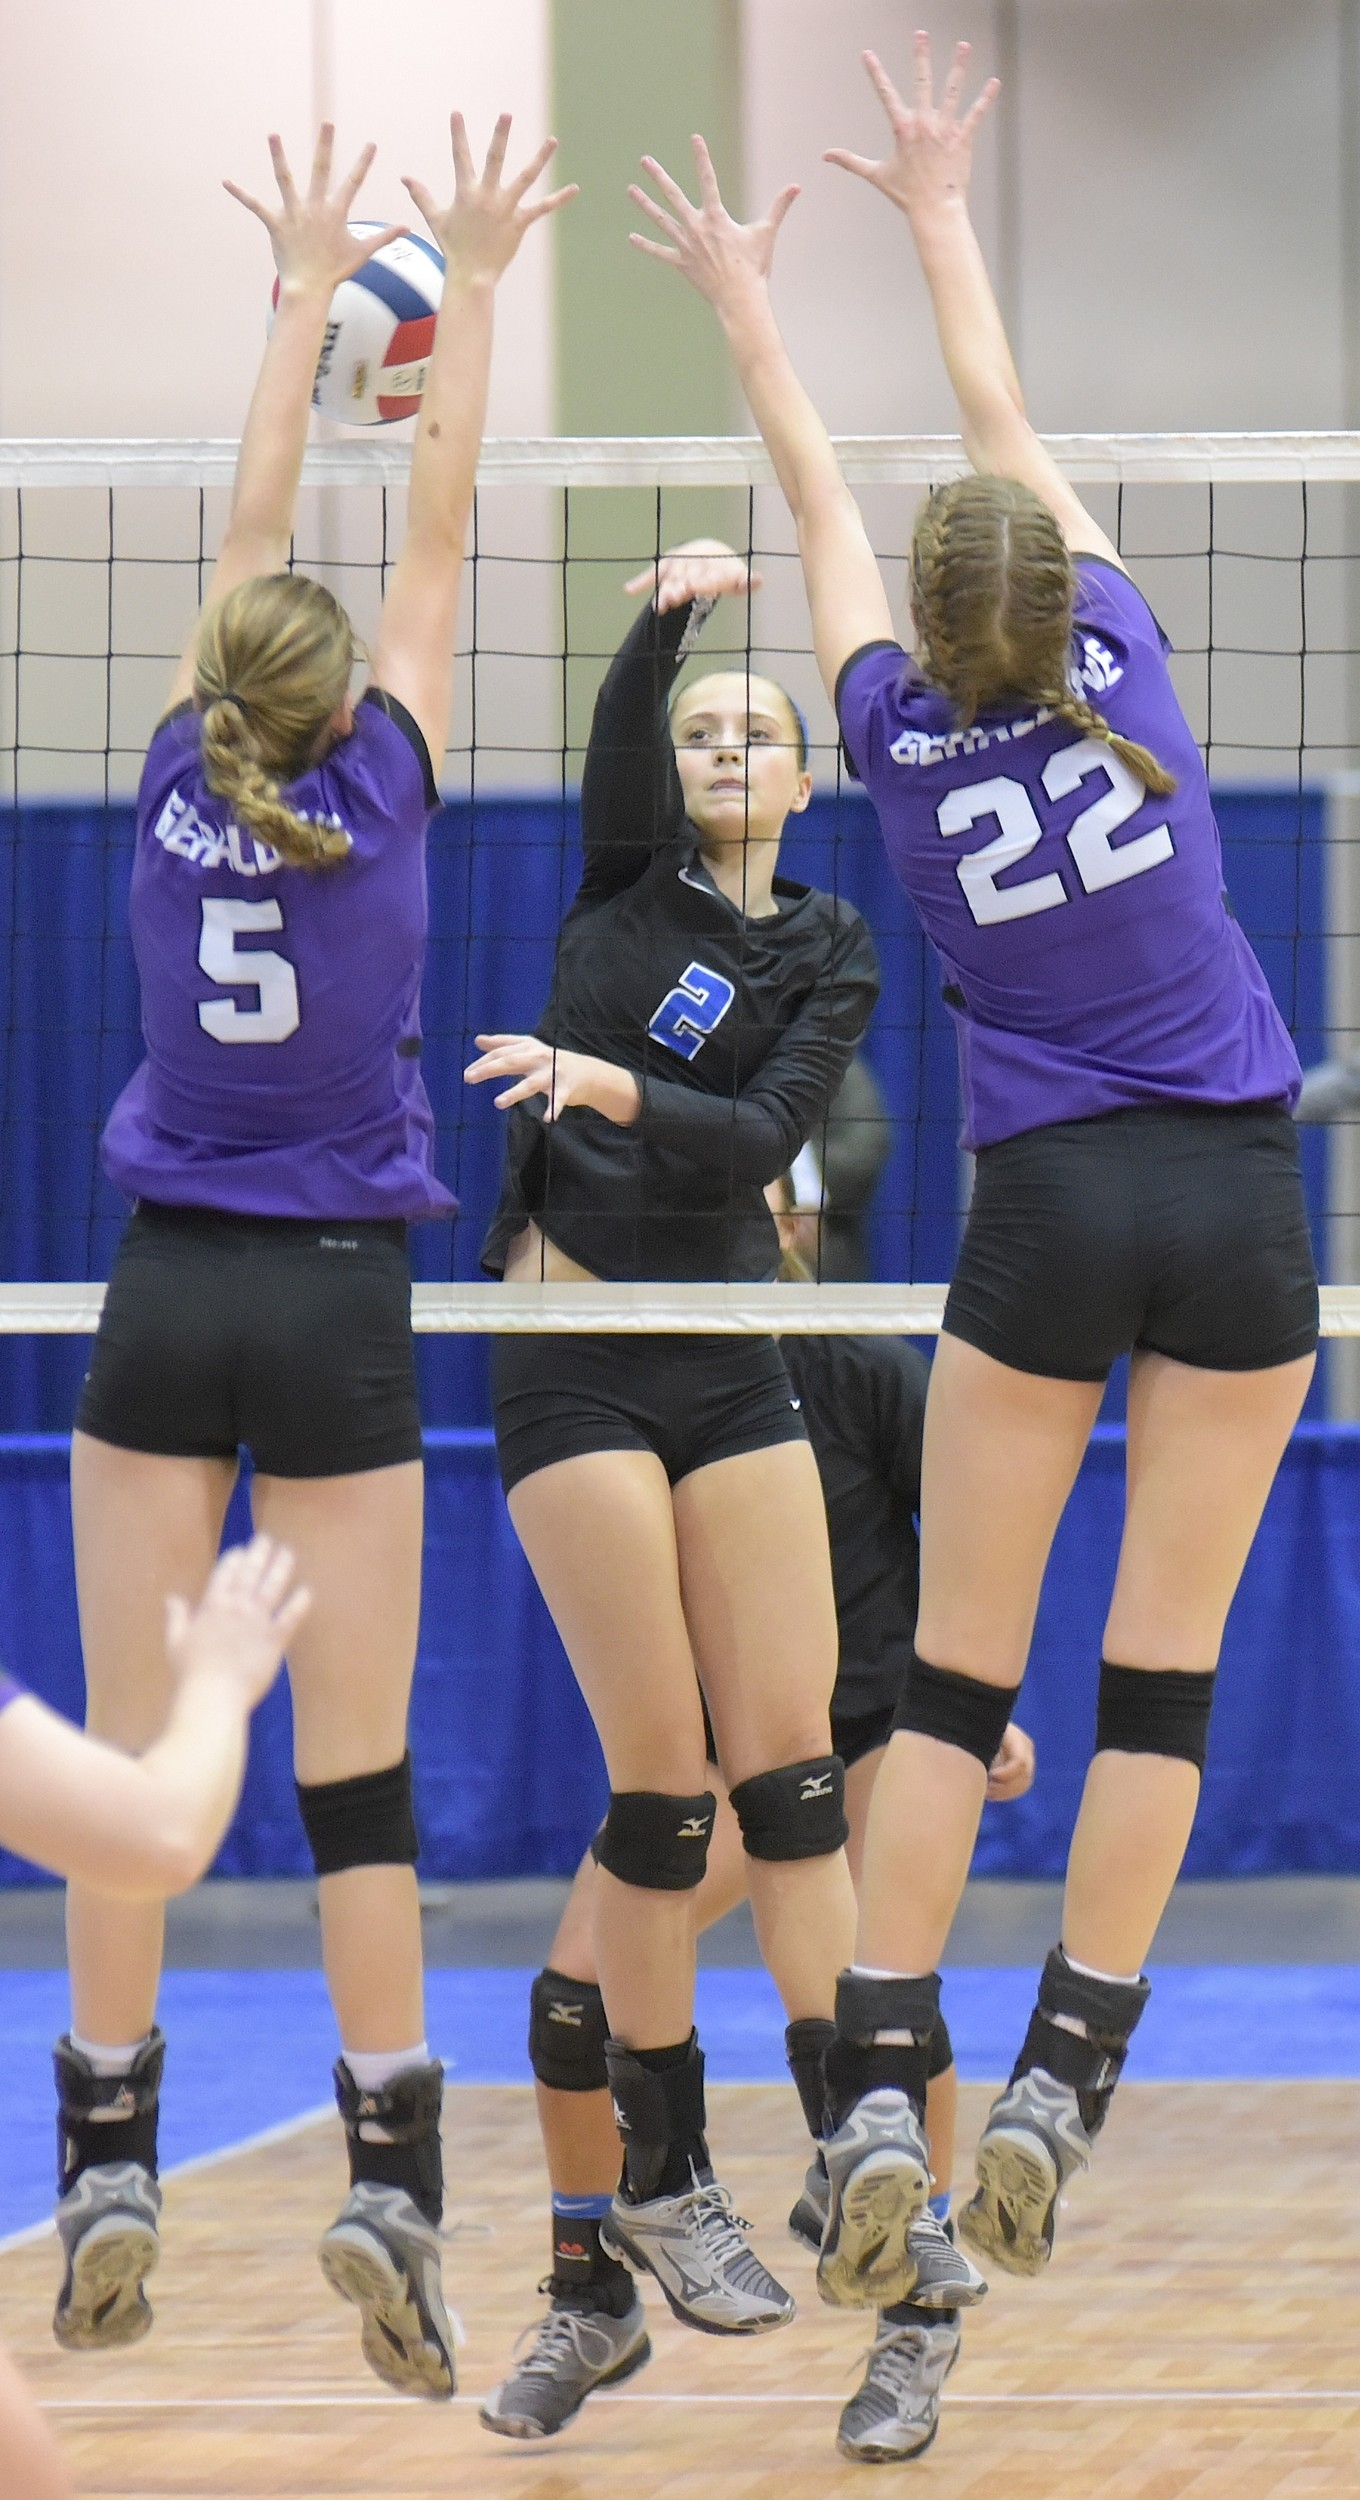 Carbon Hill's Grayson Evans (2) hits the ball over the net as Geraldine's Haven Hall (5) and Karlee Hale (22) defend during their match at the North Super Regional Tournament in Huntsville on Saturday.